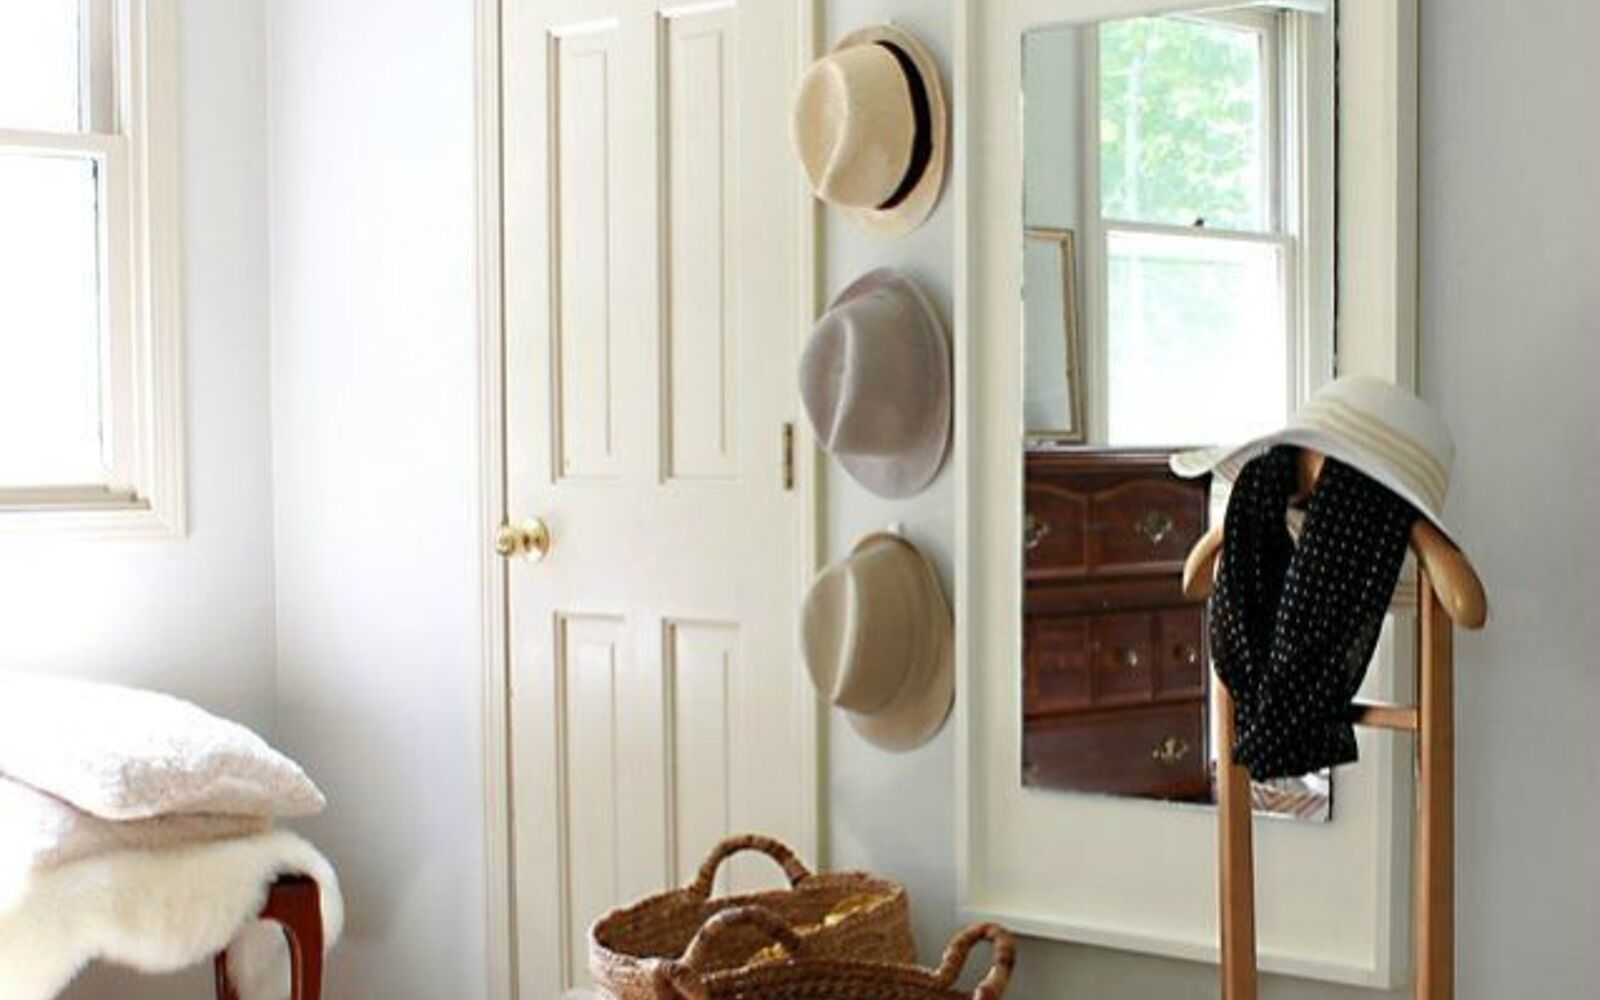 s 11 designer decor looks you can make on the cheap, crafts, home decor, Floating Wall Mirror West Elm